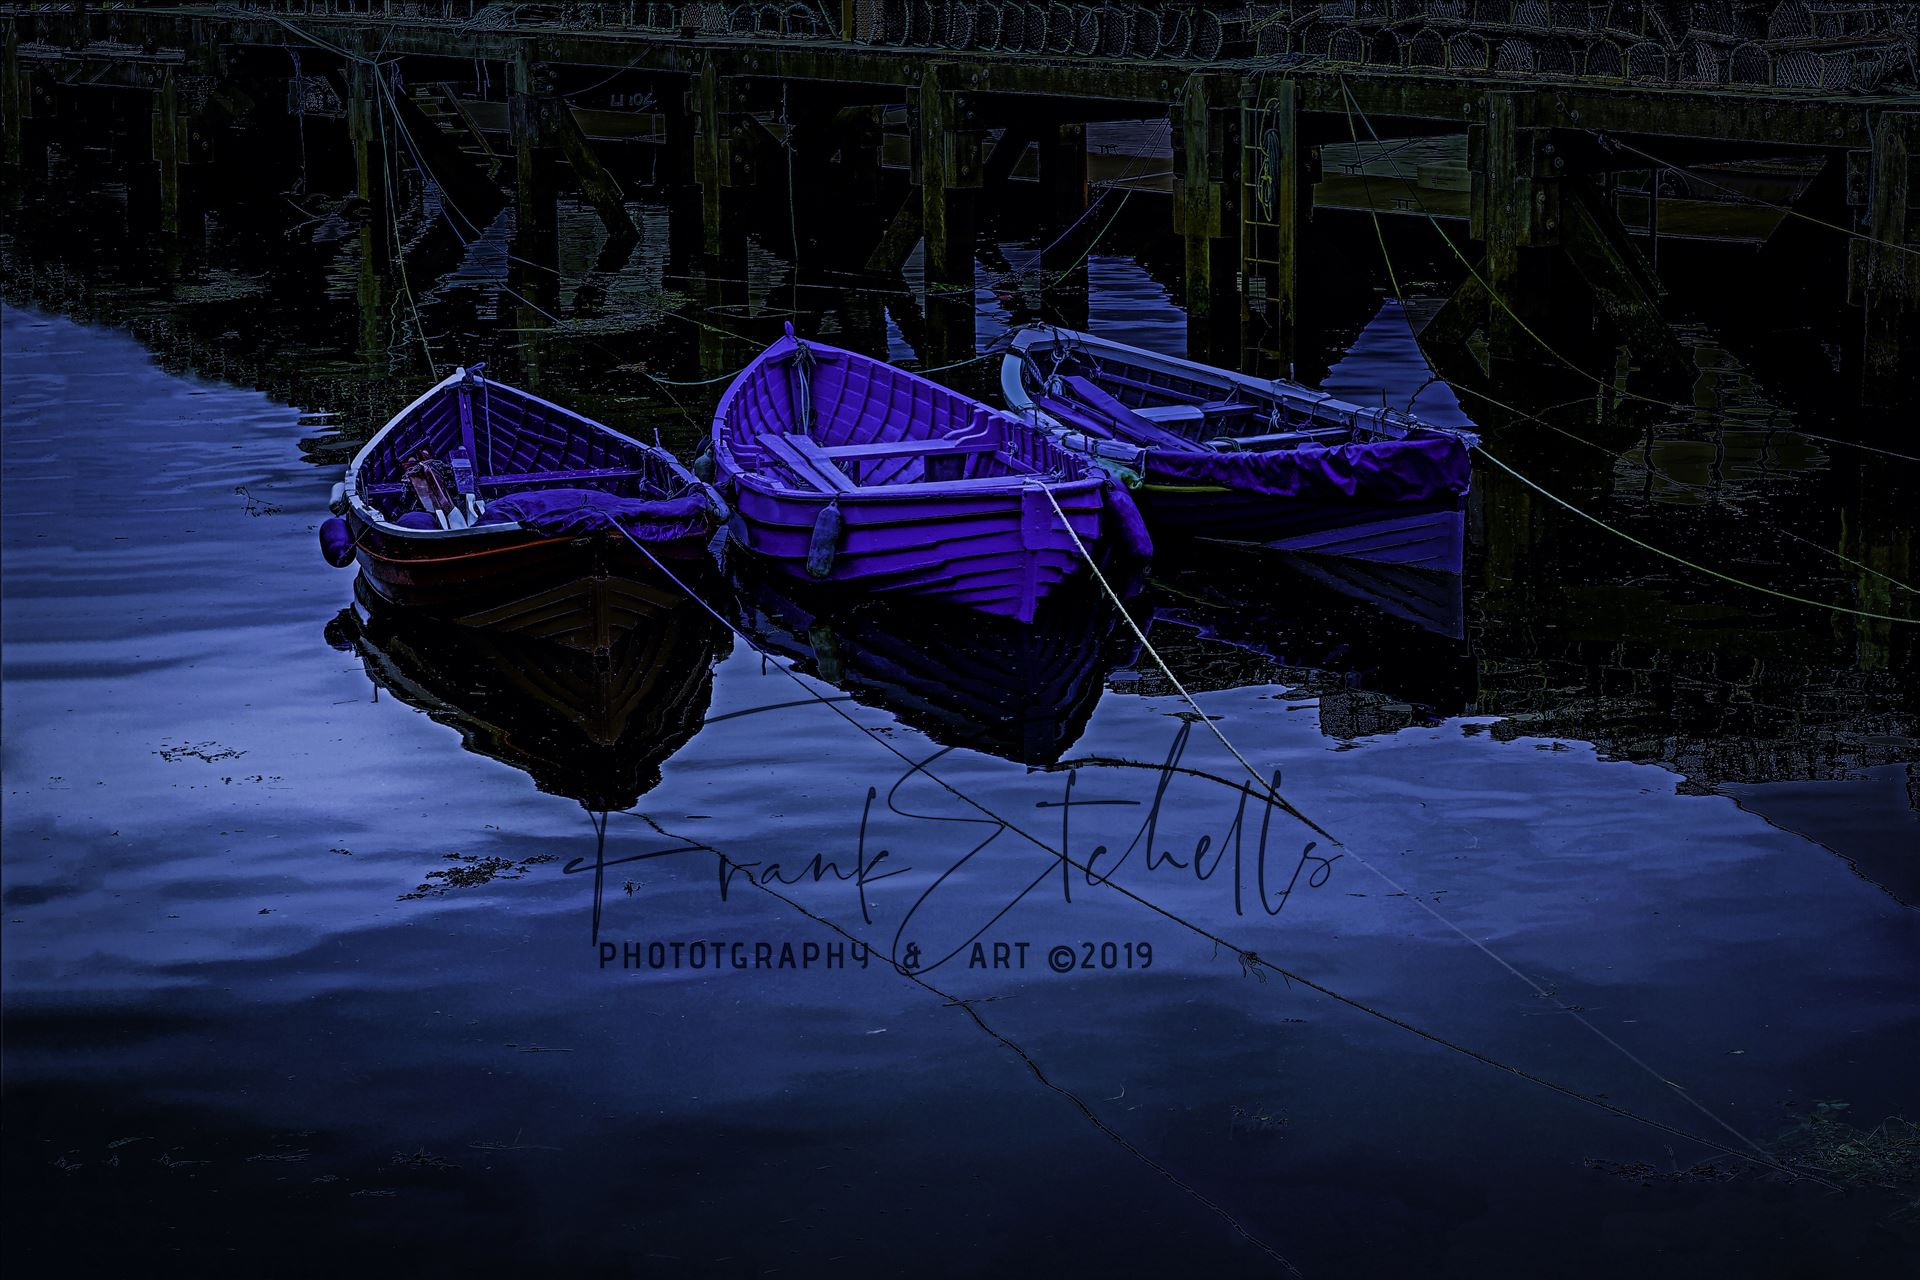 Boats by Moonlight, Edit - ''Digital Art conversion: On a trip to Whitby in Yorkshire in 2012 and a walk through the town brought us to the harbour quay side and these small tethered boats. Edit to give a 'moonlit' effect... by Frank Etchells Photography